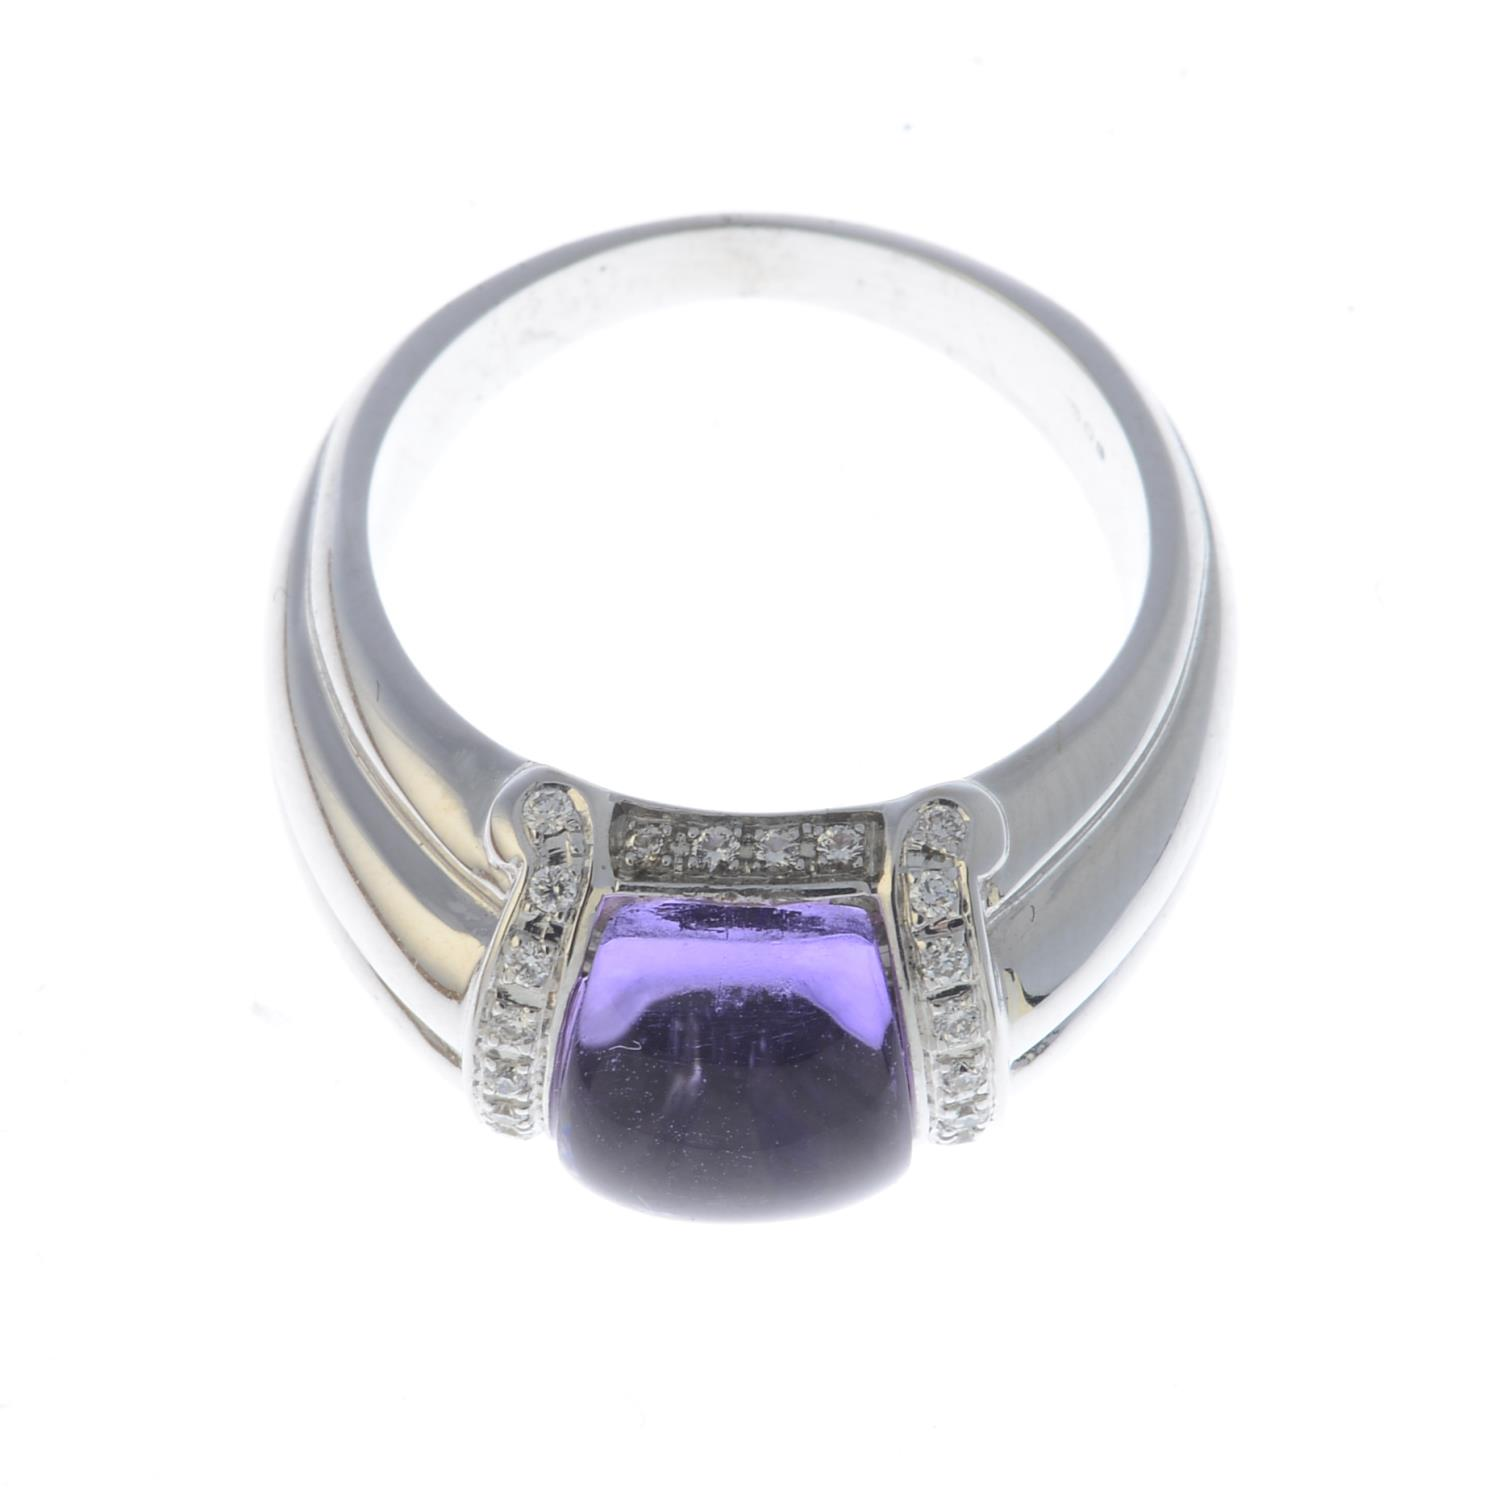 Lot 32 - An 18ct gold amethyst and diamond ring.